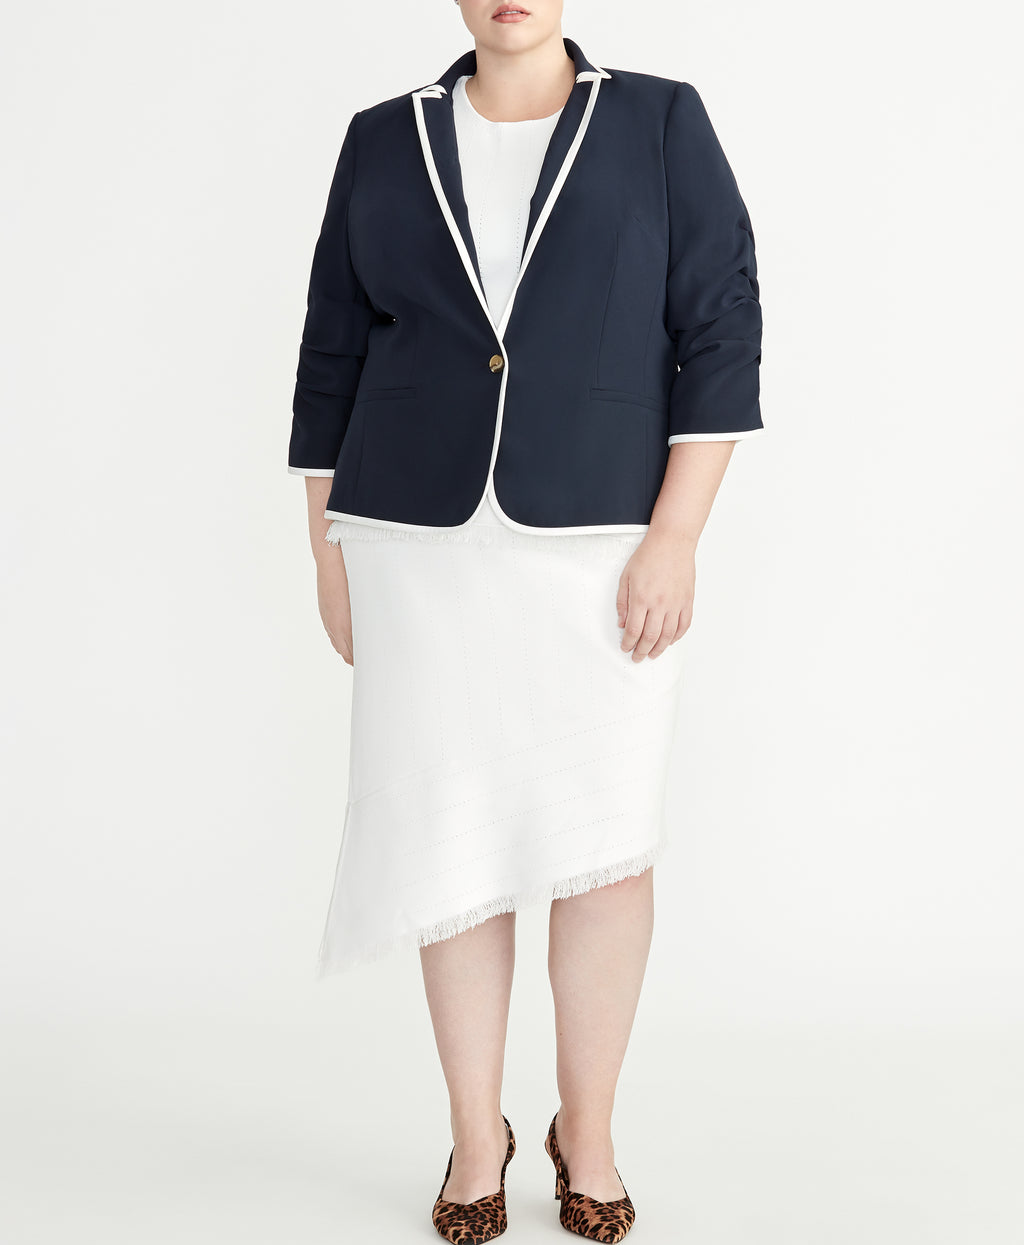 Gathered Sleeve Blazer | Gathered Sleeve Blazer